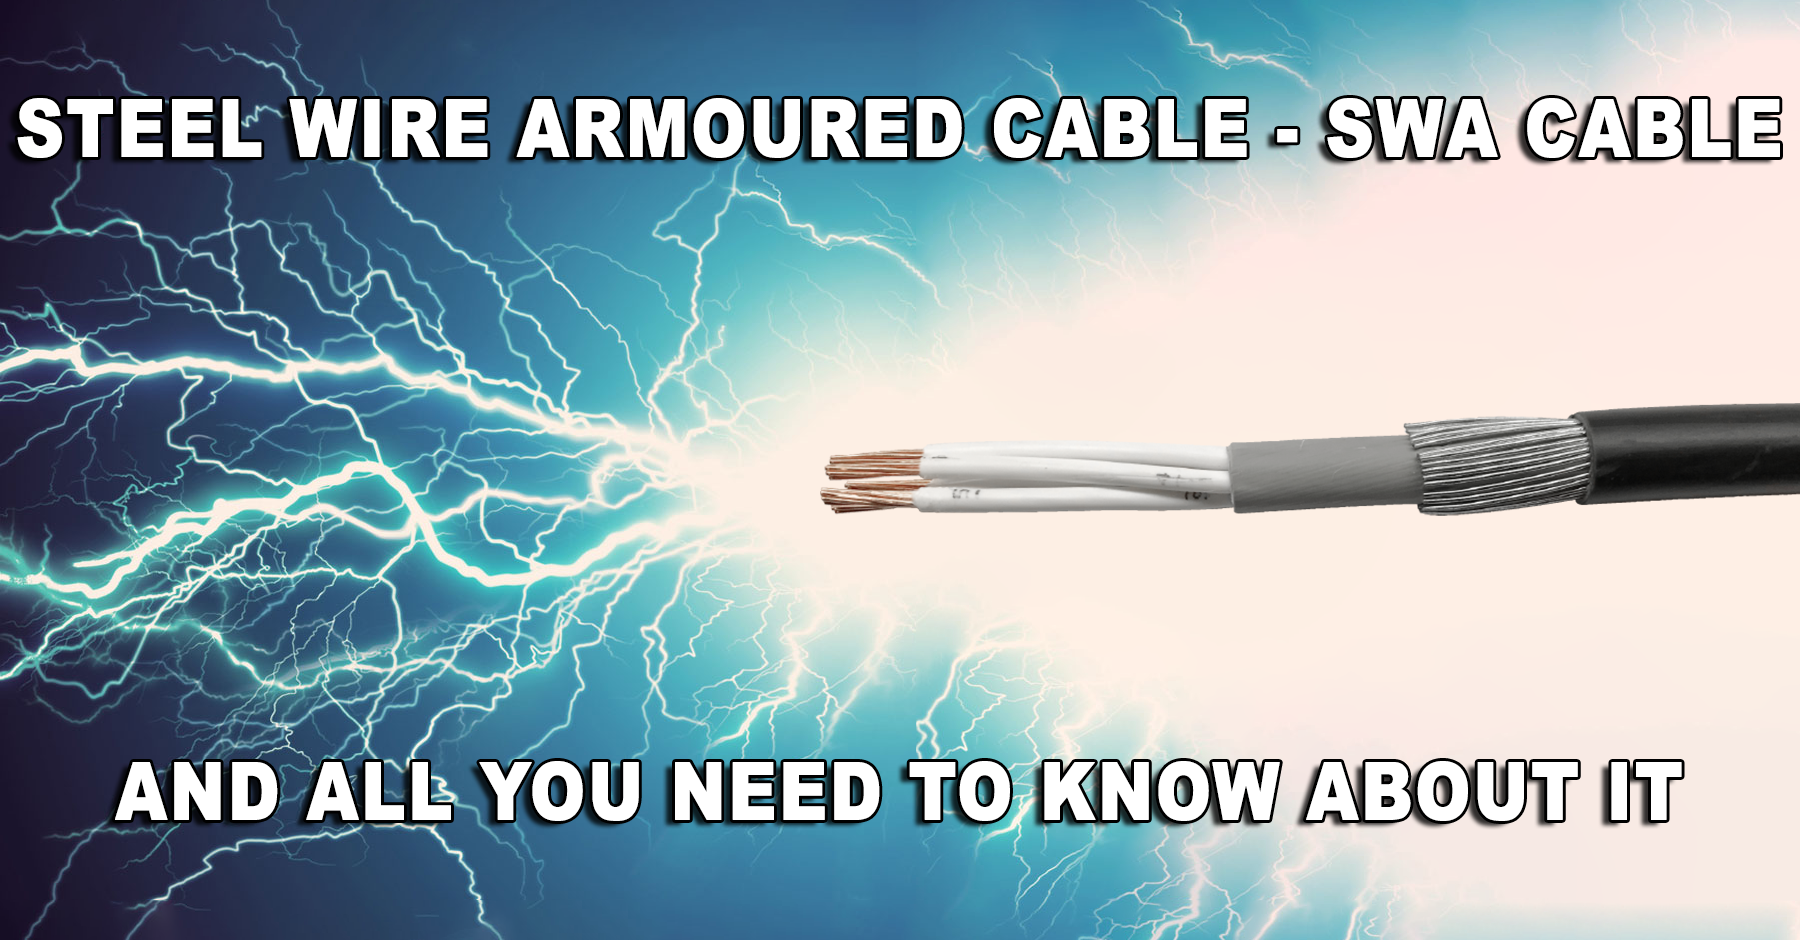 Steel Wire Armoured Cable: All you need to know